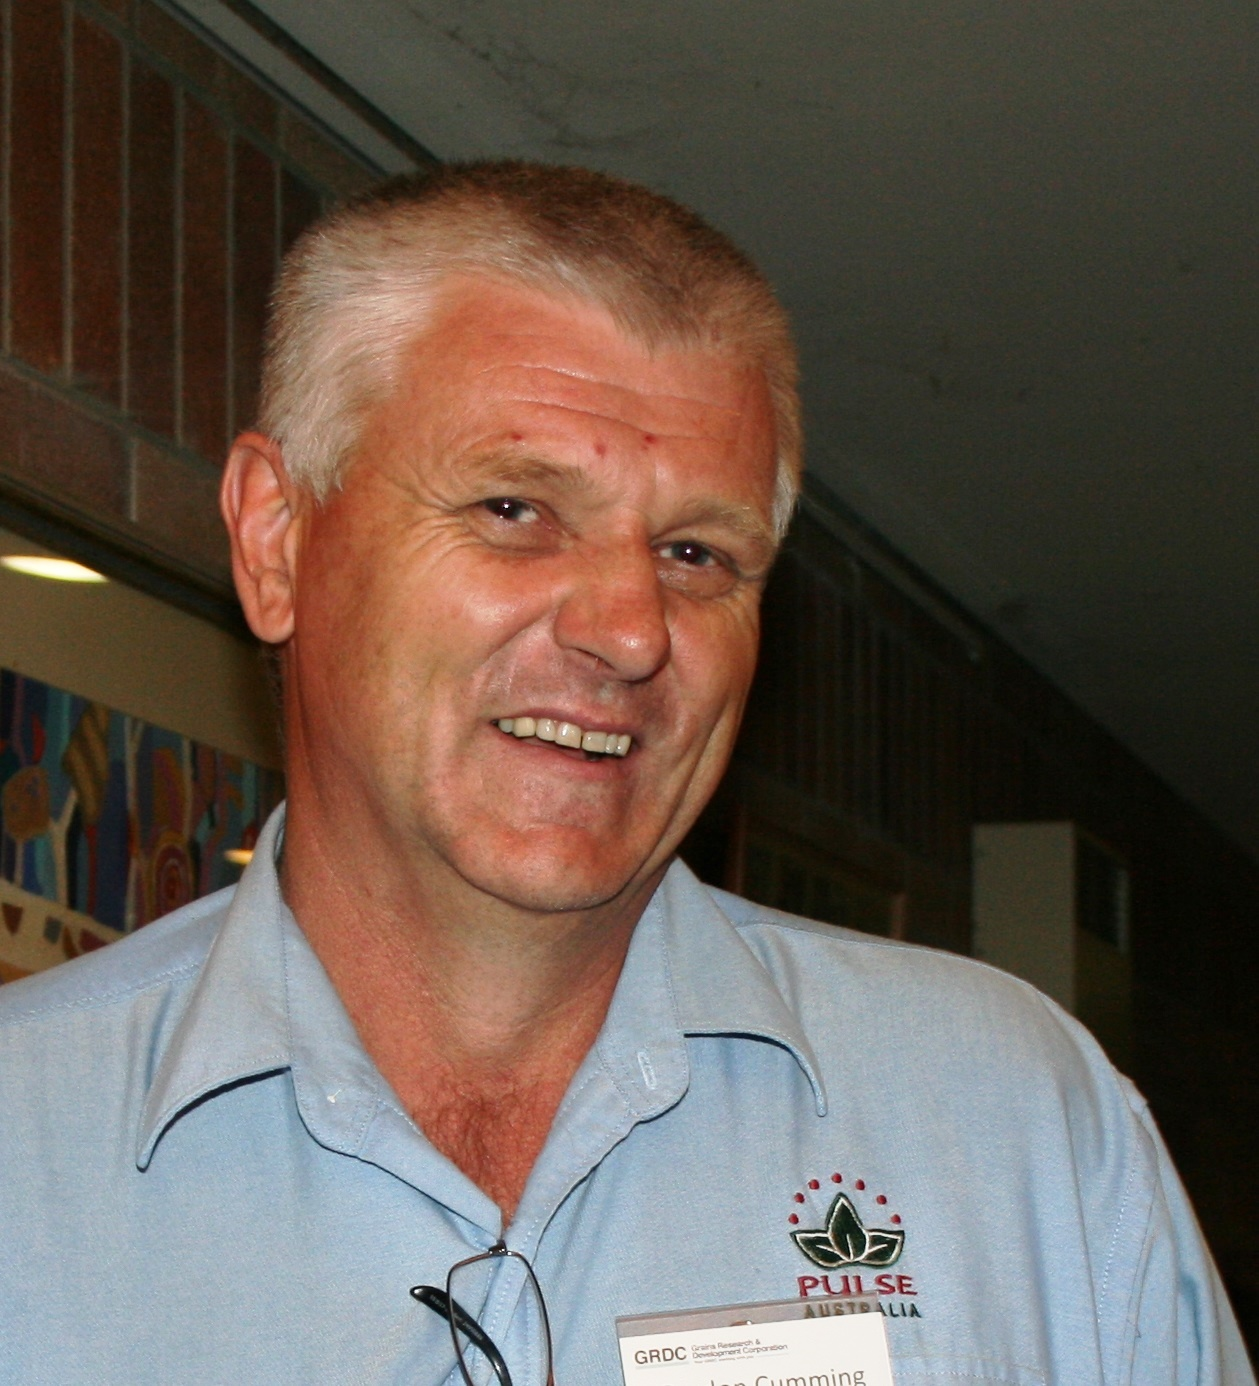 Image of Pulse Australia national manager Gordon Cumming.